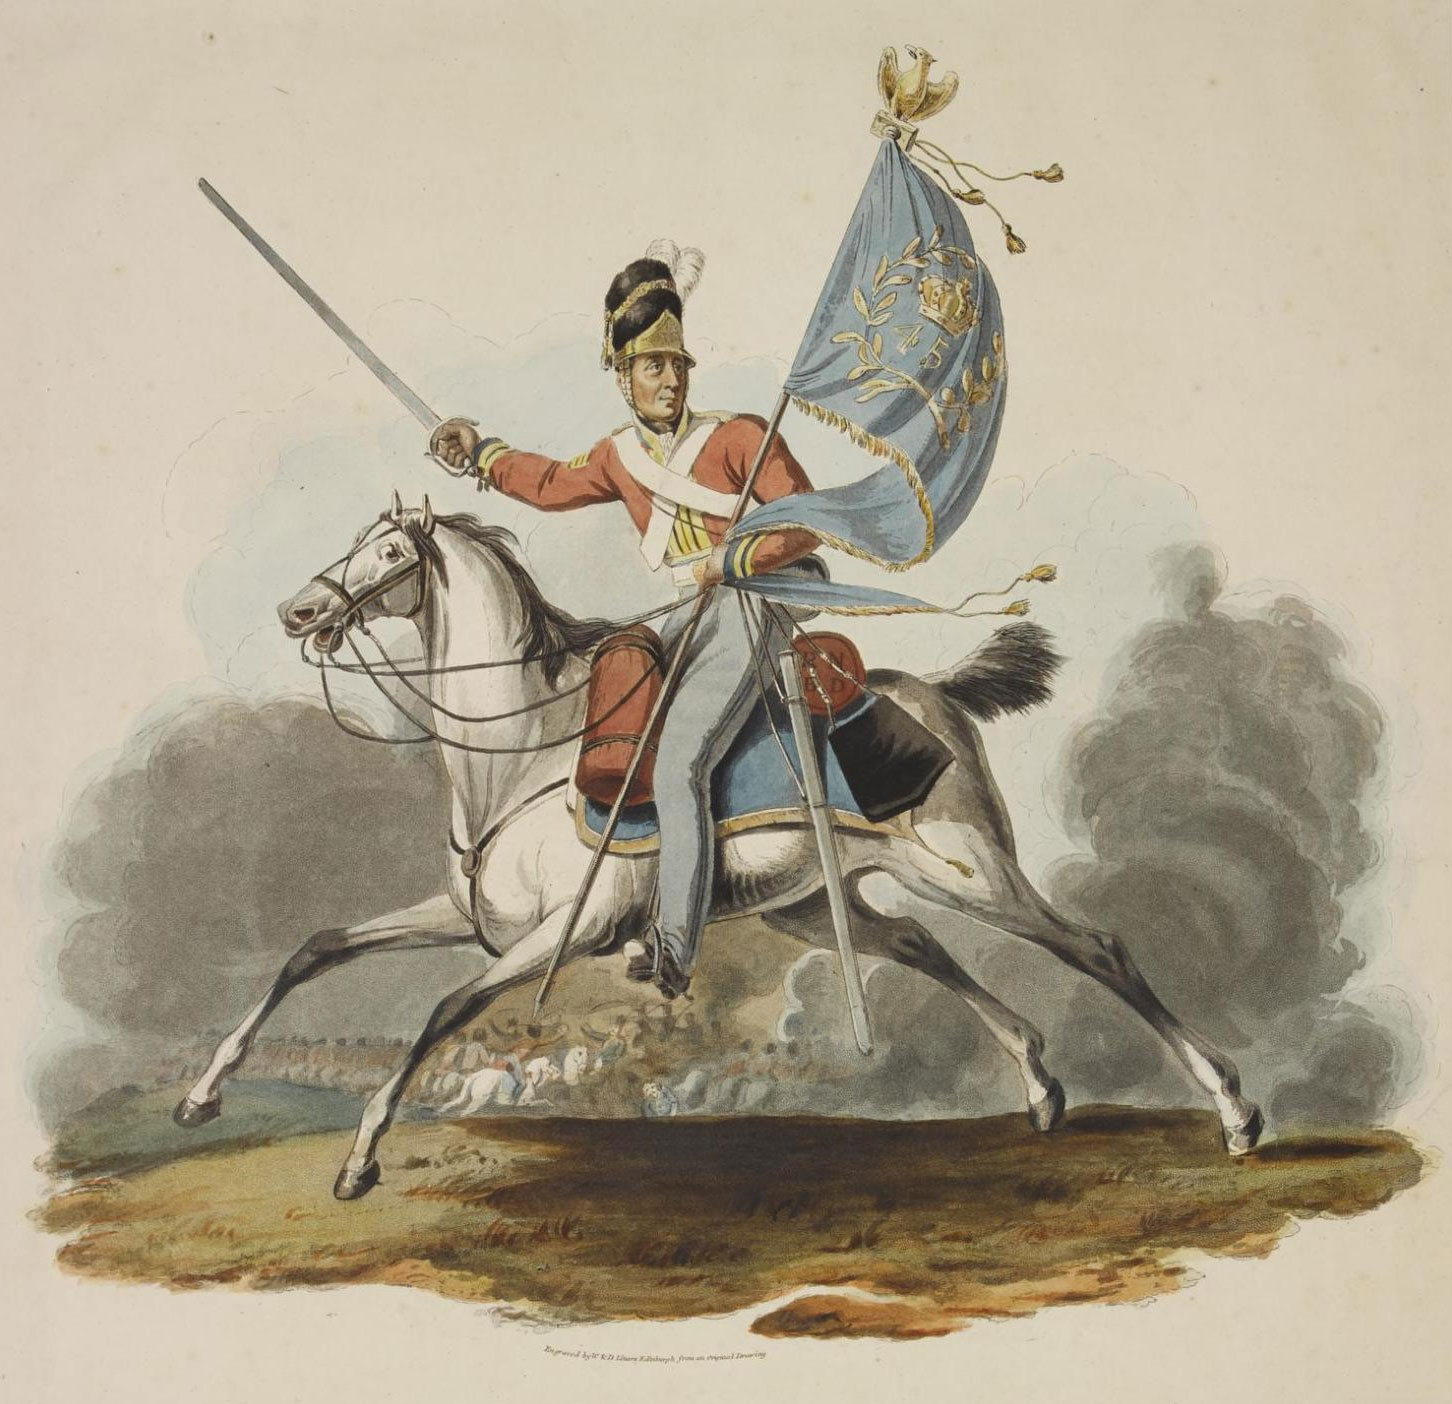 Sergeant Charles Ewart taking the French eagle at Waterloo